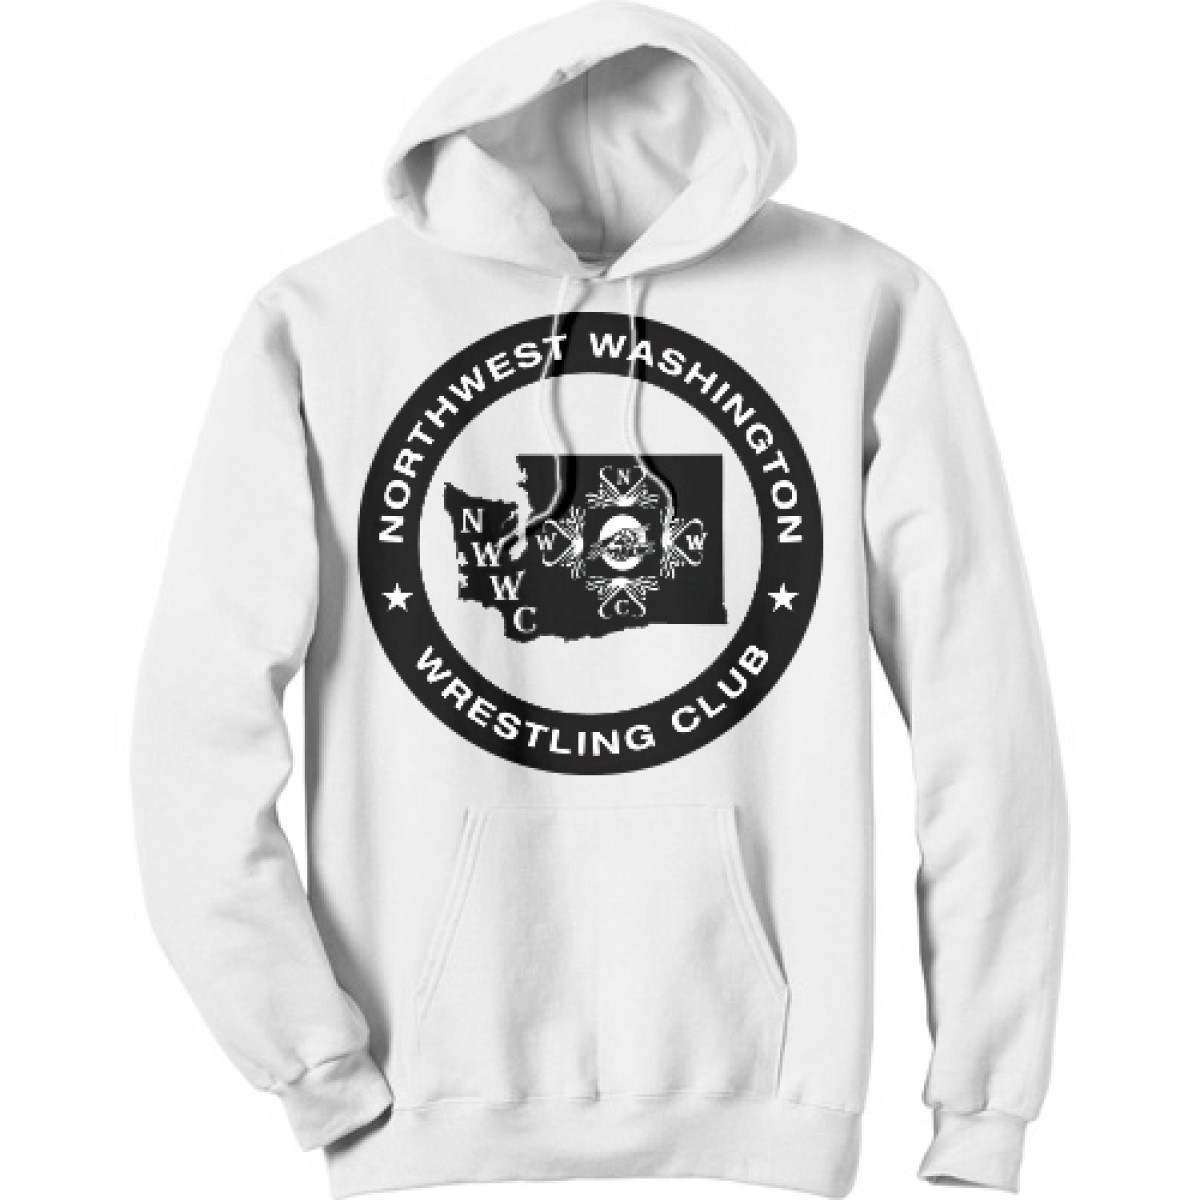 NWWC white hoodie with the main logo in black-White-XL